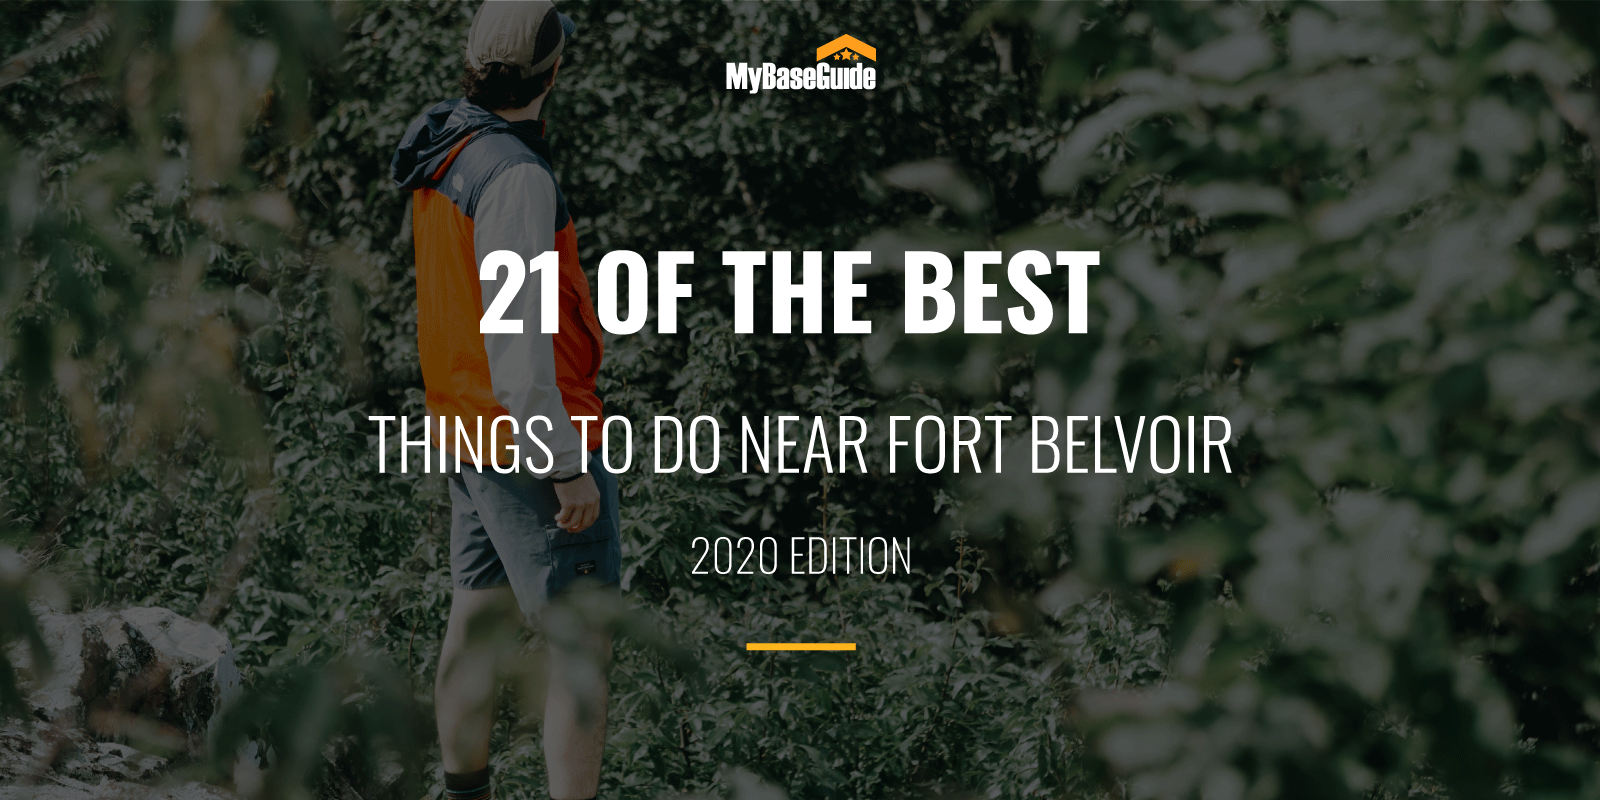 21 Of the Best Things to Do Near Fort Belvoir